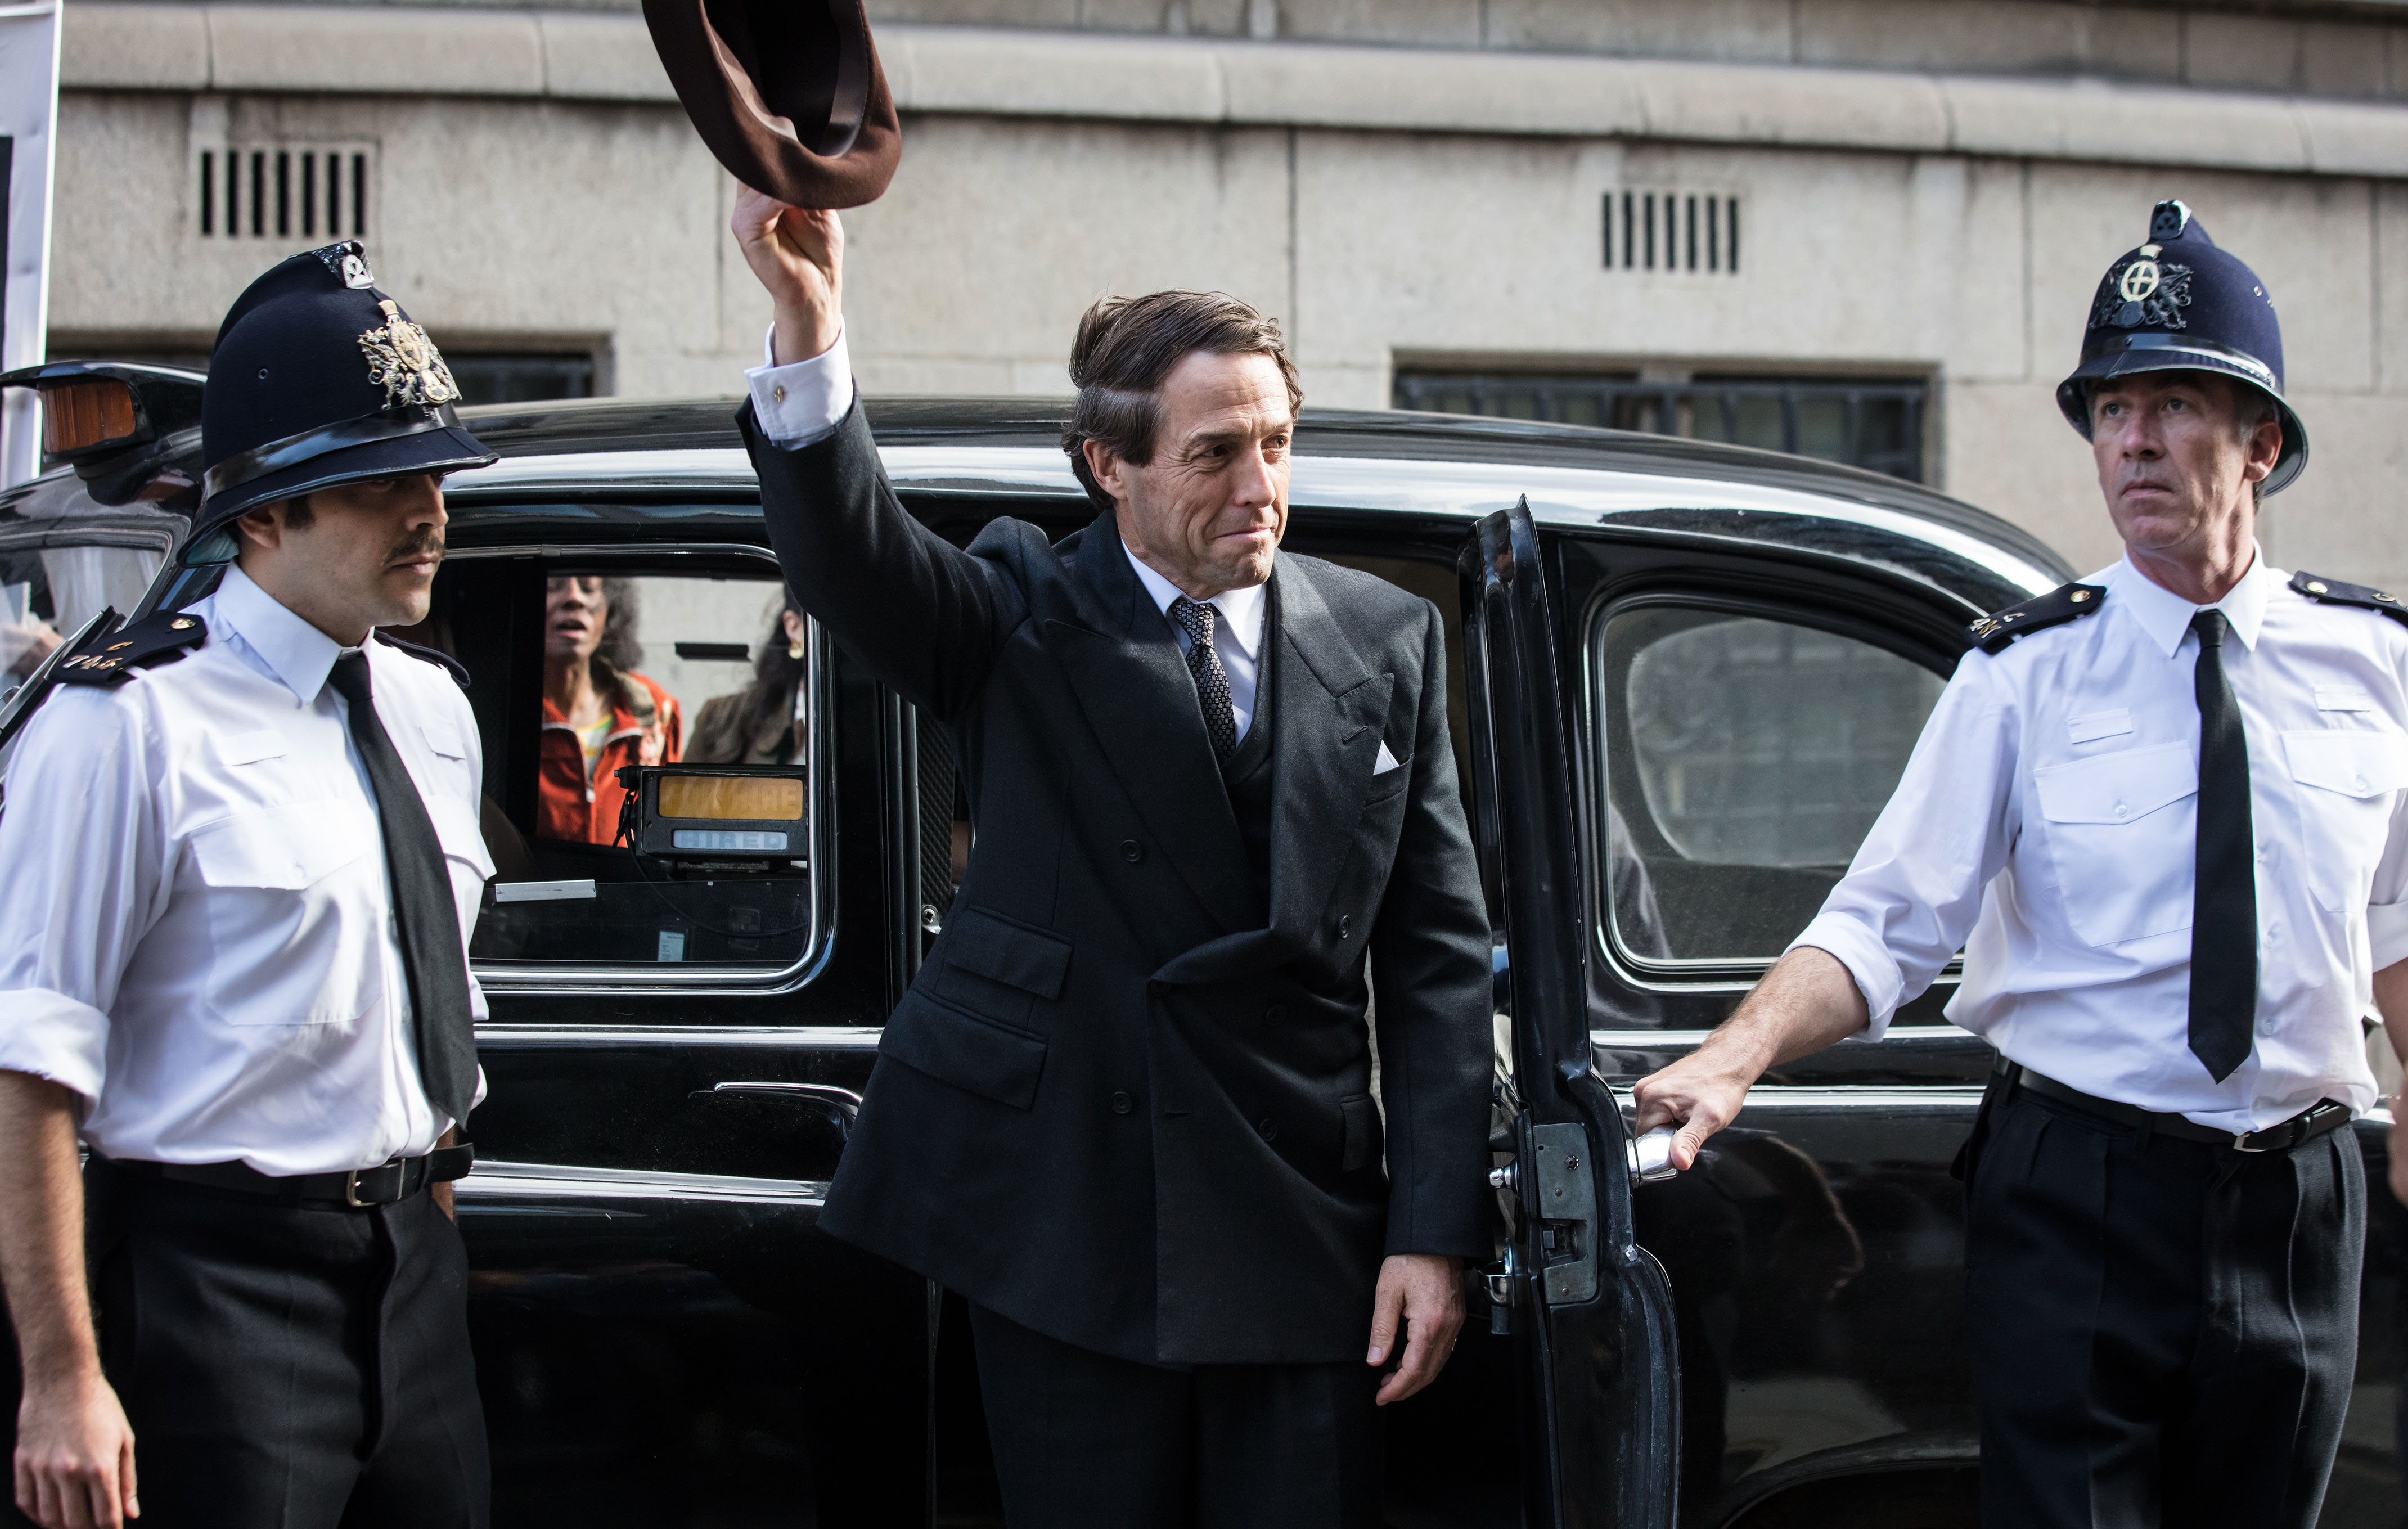 A Very English Scandal - Jeremy Thorpe played by Hugh Grant